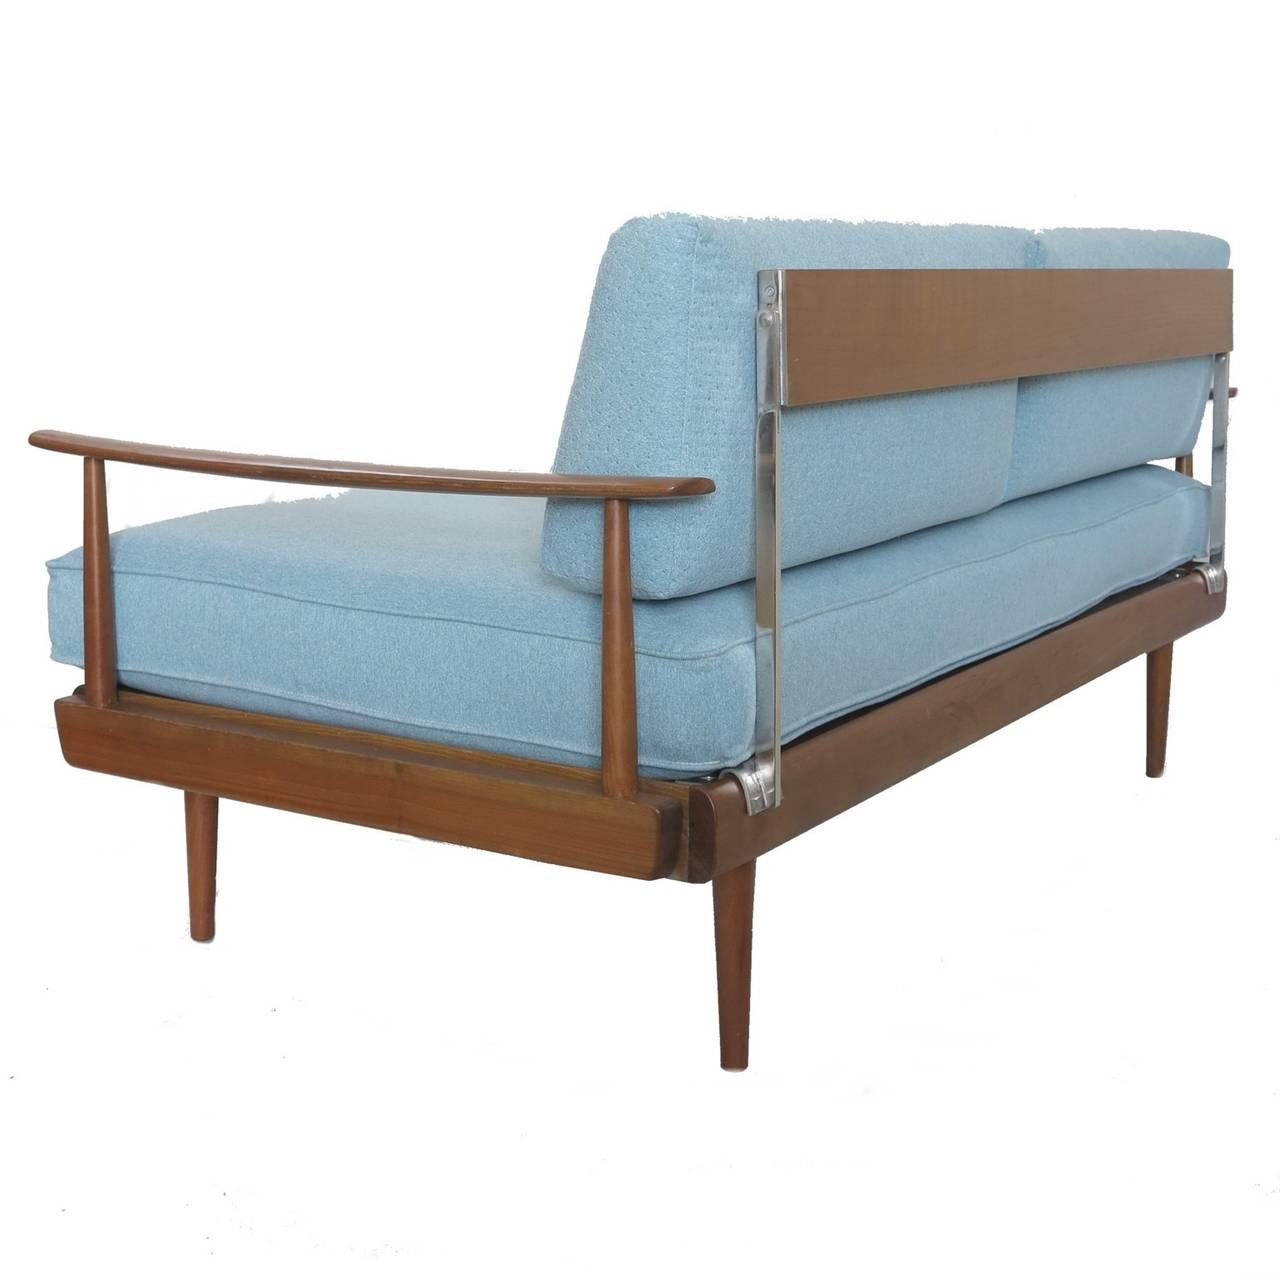 Daybed Or Sofa Antimott Turquoise Blue By Wilhelm Knoll 1950 1960 At 1stdibs